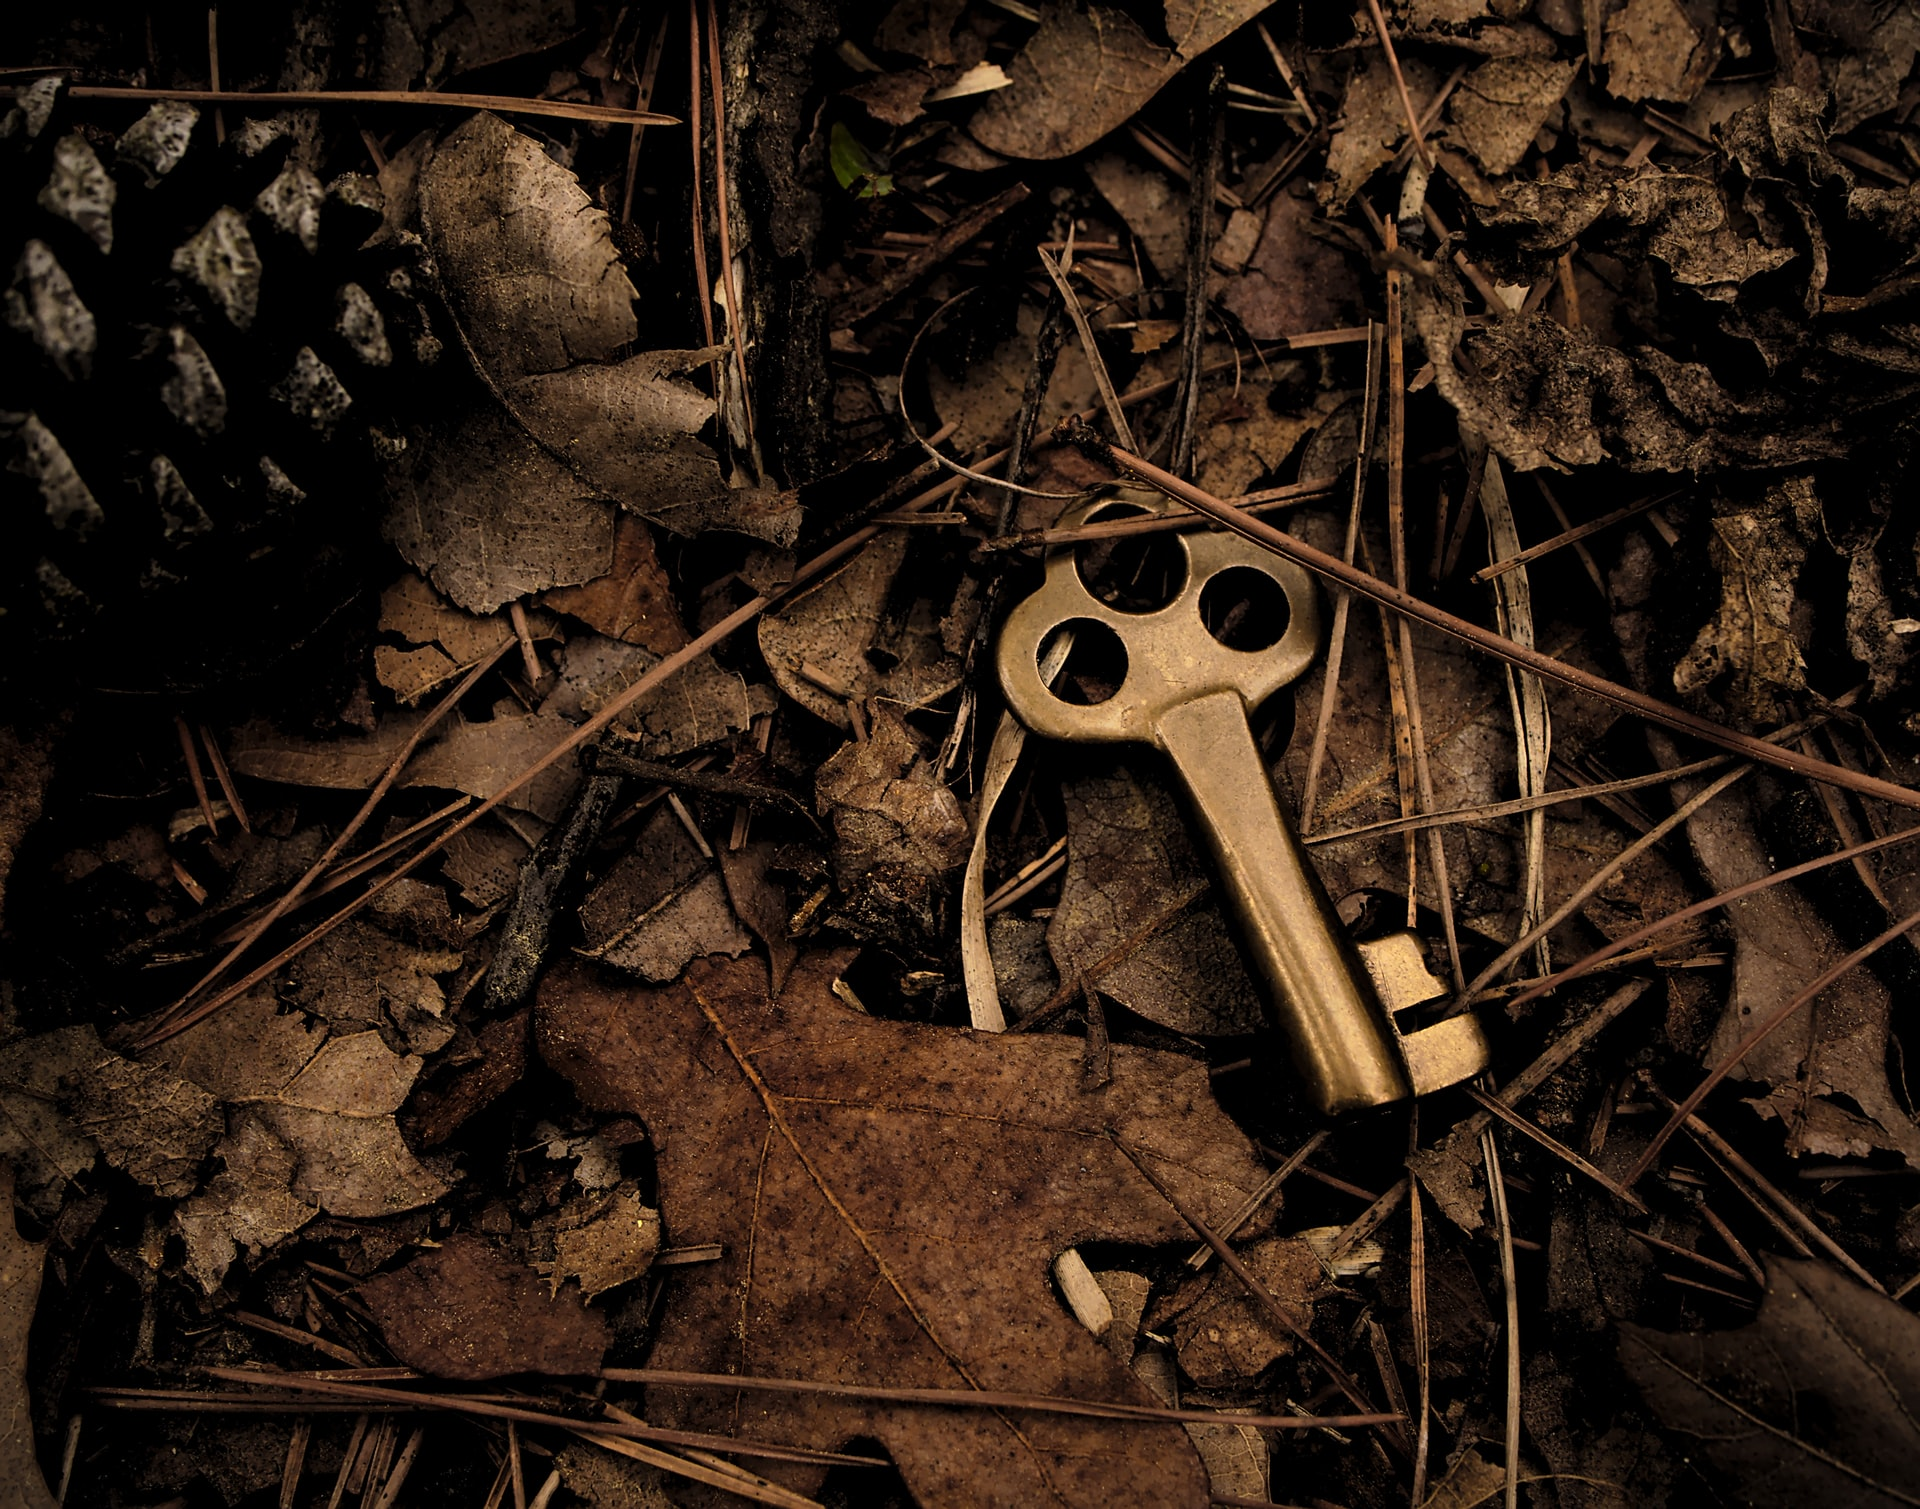 A golden key hidden among the dry leaves and twigs